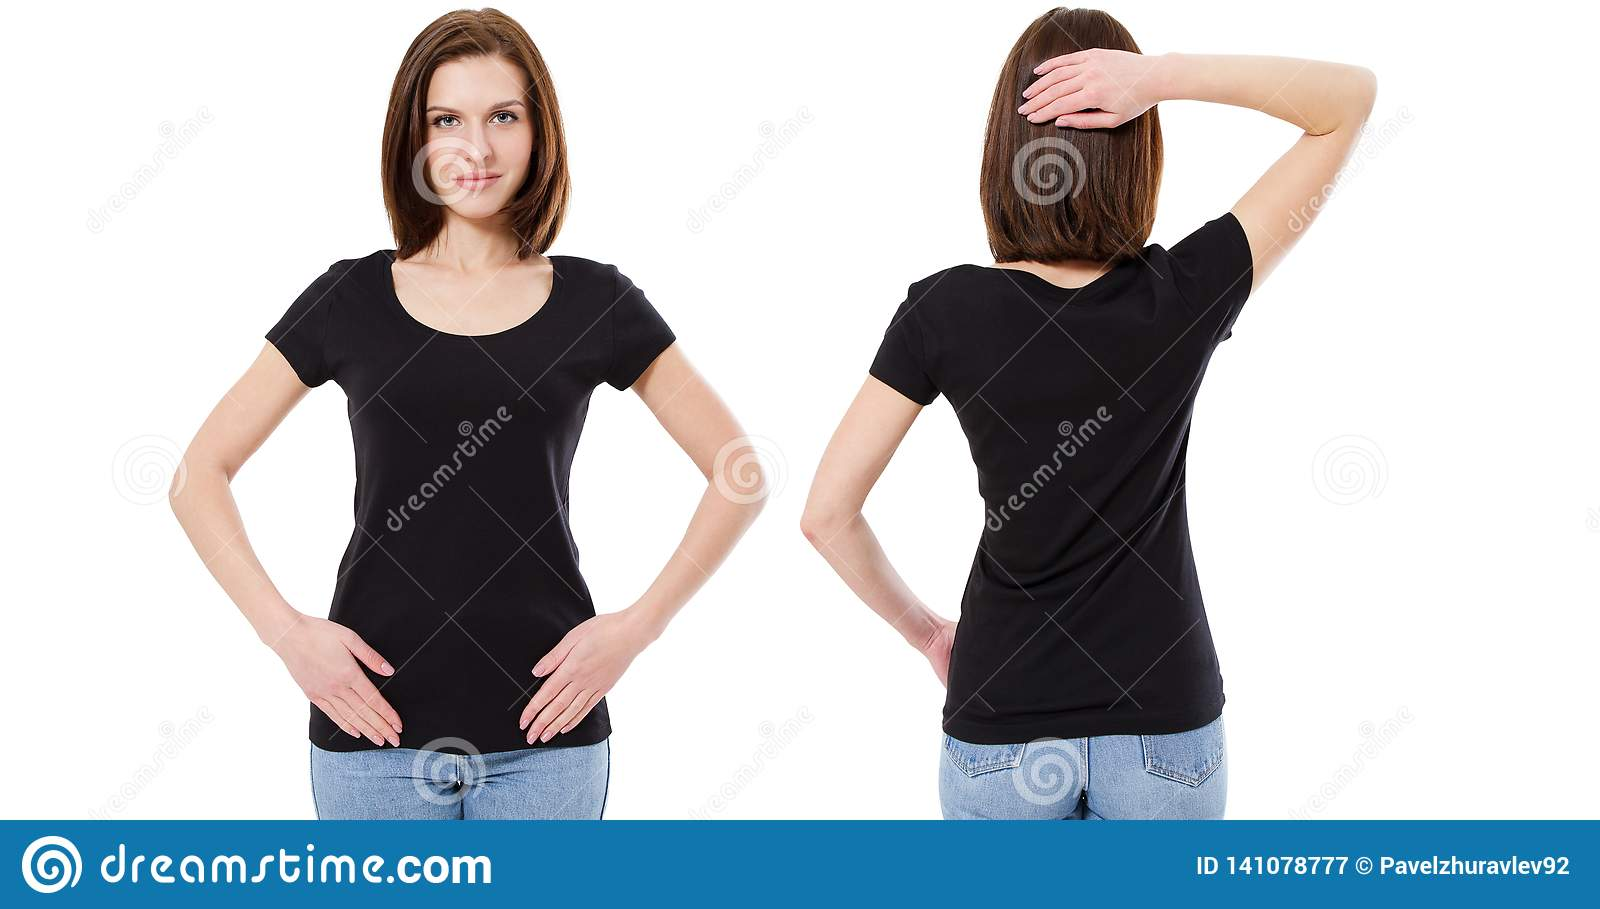 T-shirt design and people concept - close up of young girl in blank black t-shirt, shirt front and back isolated